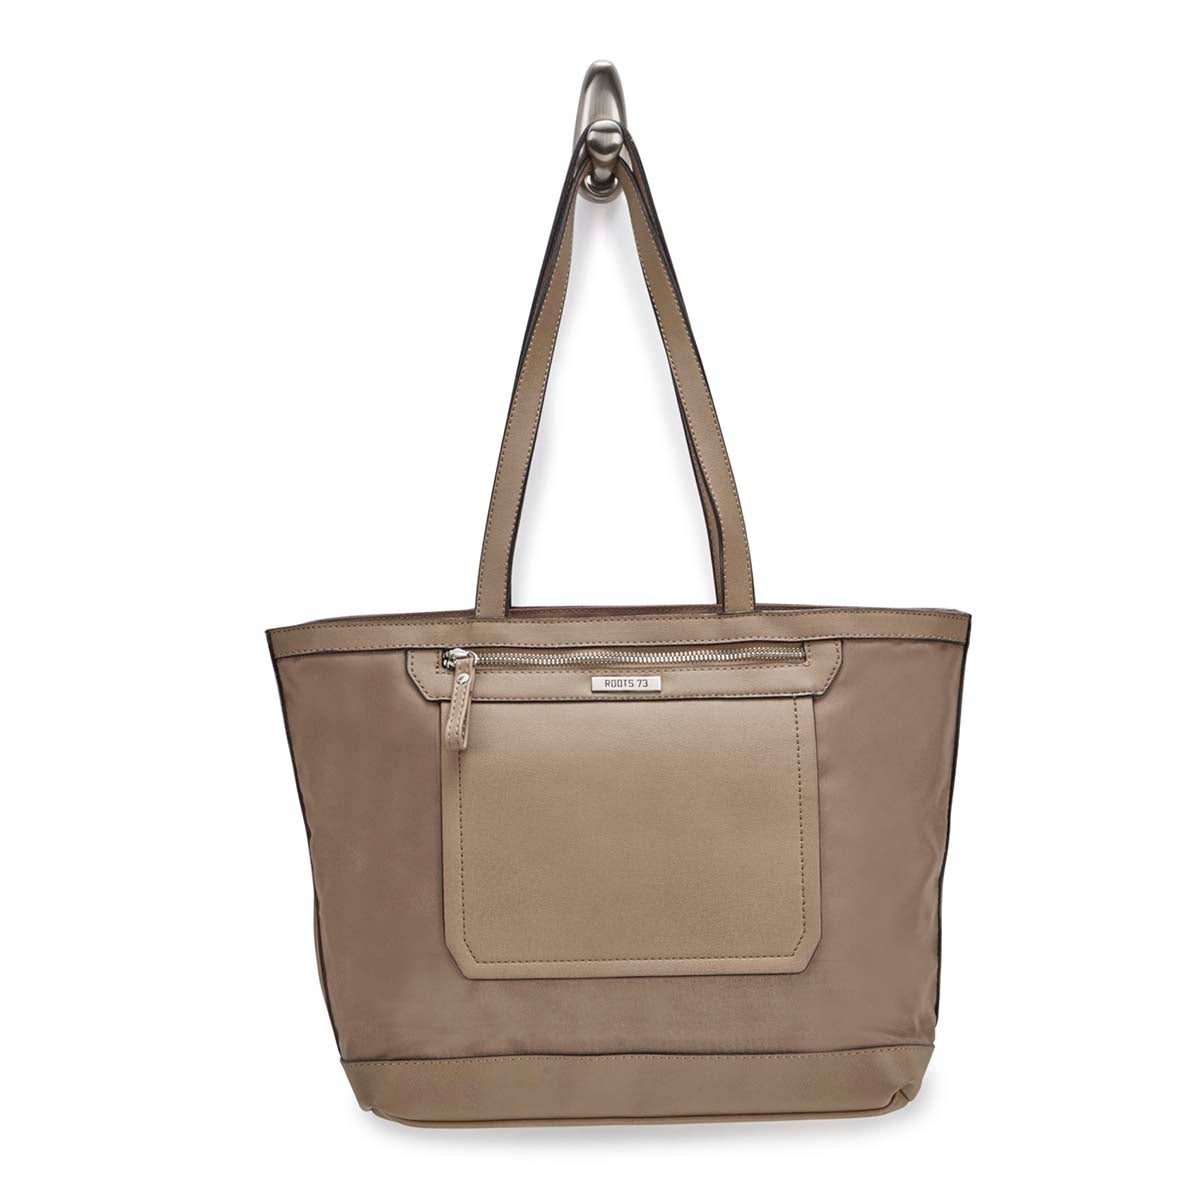 Lds Roots73 mocha pebble large tote bag